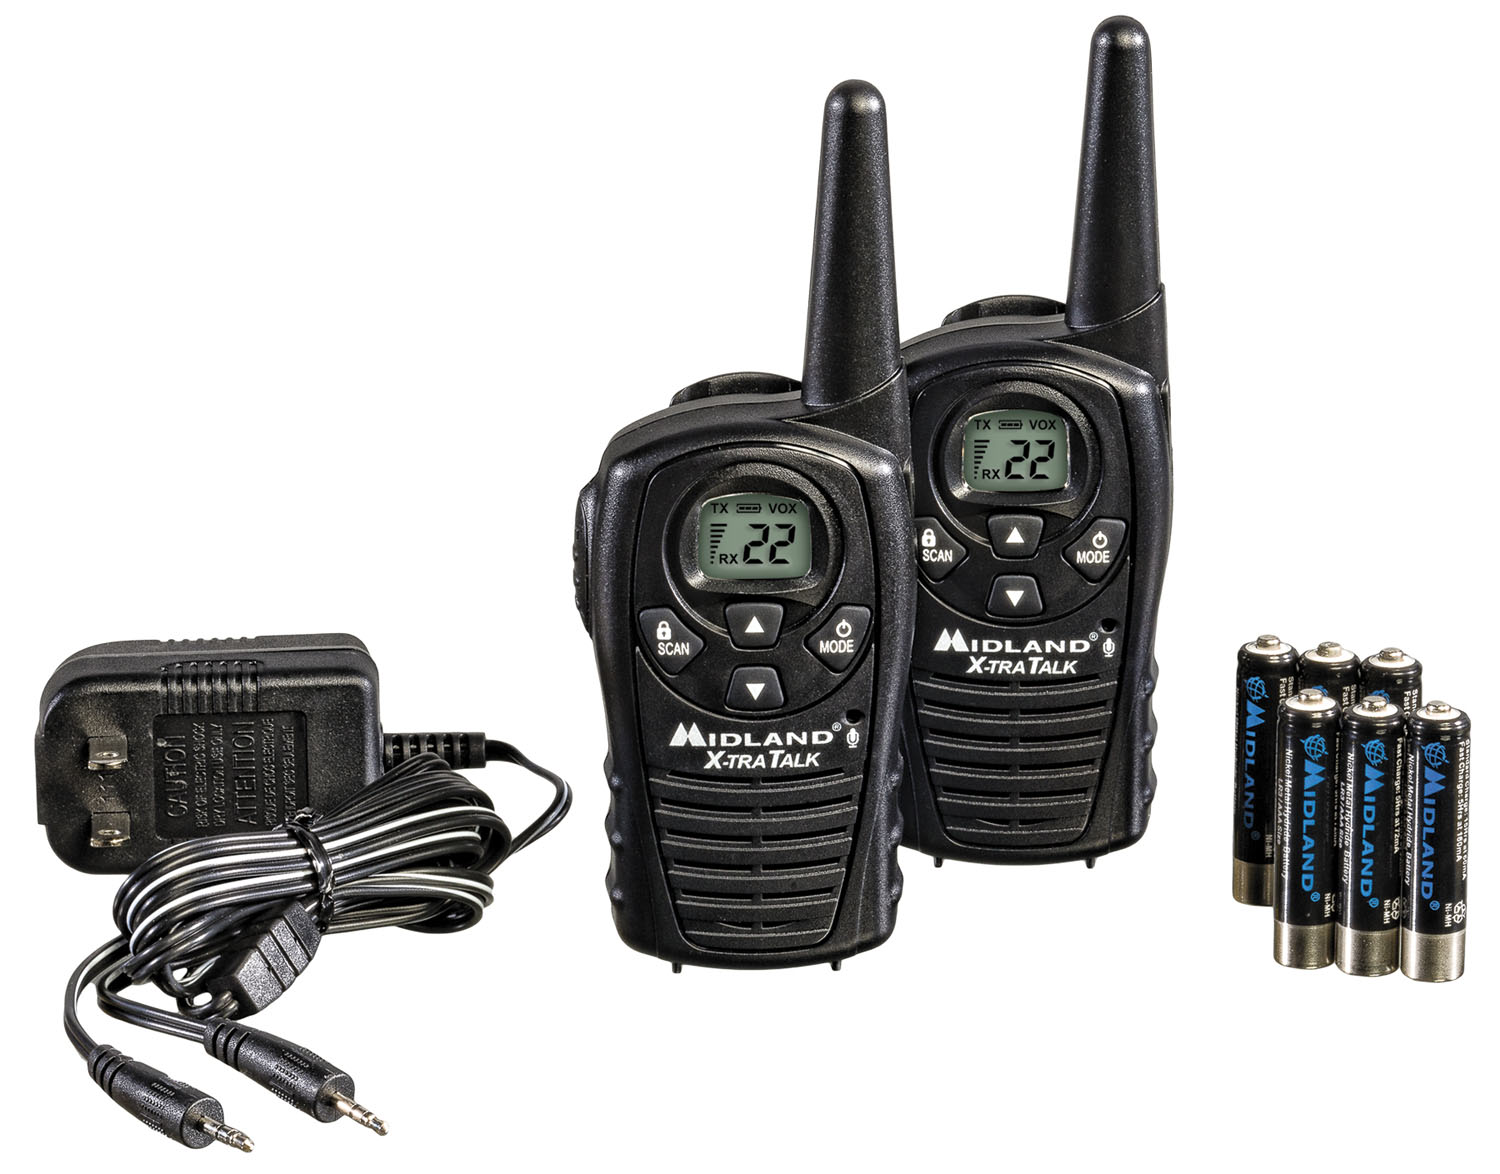 LXT118VP - Midland 22 Channel GMRS Handheld Radio